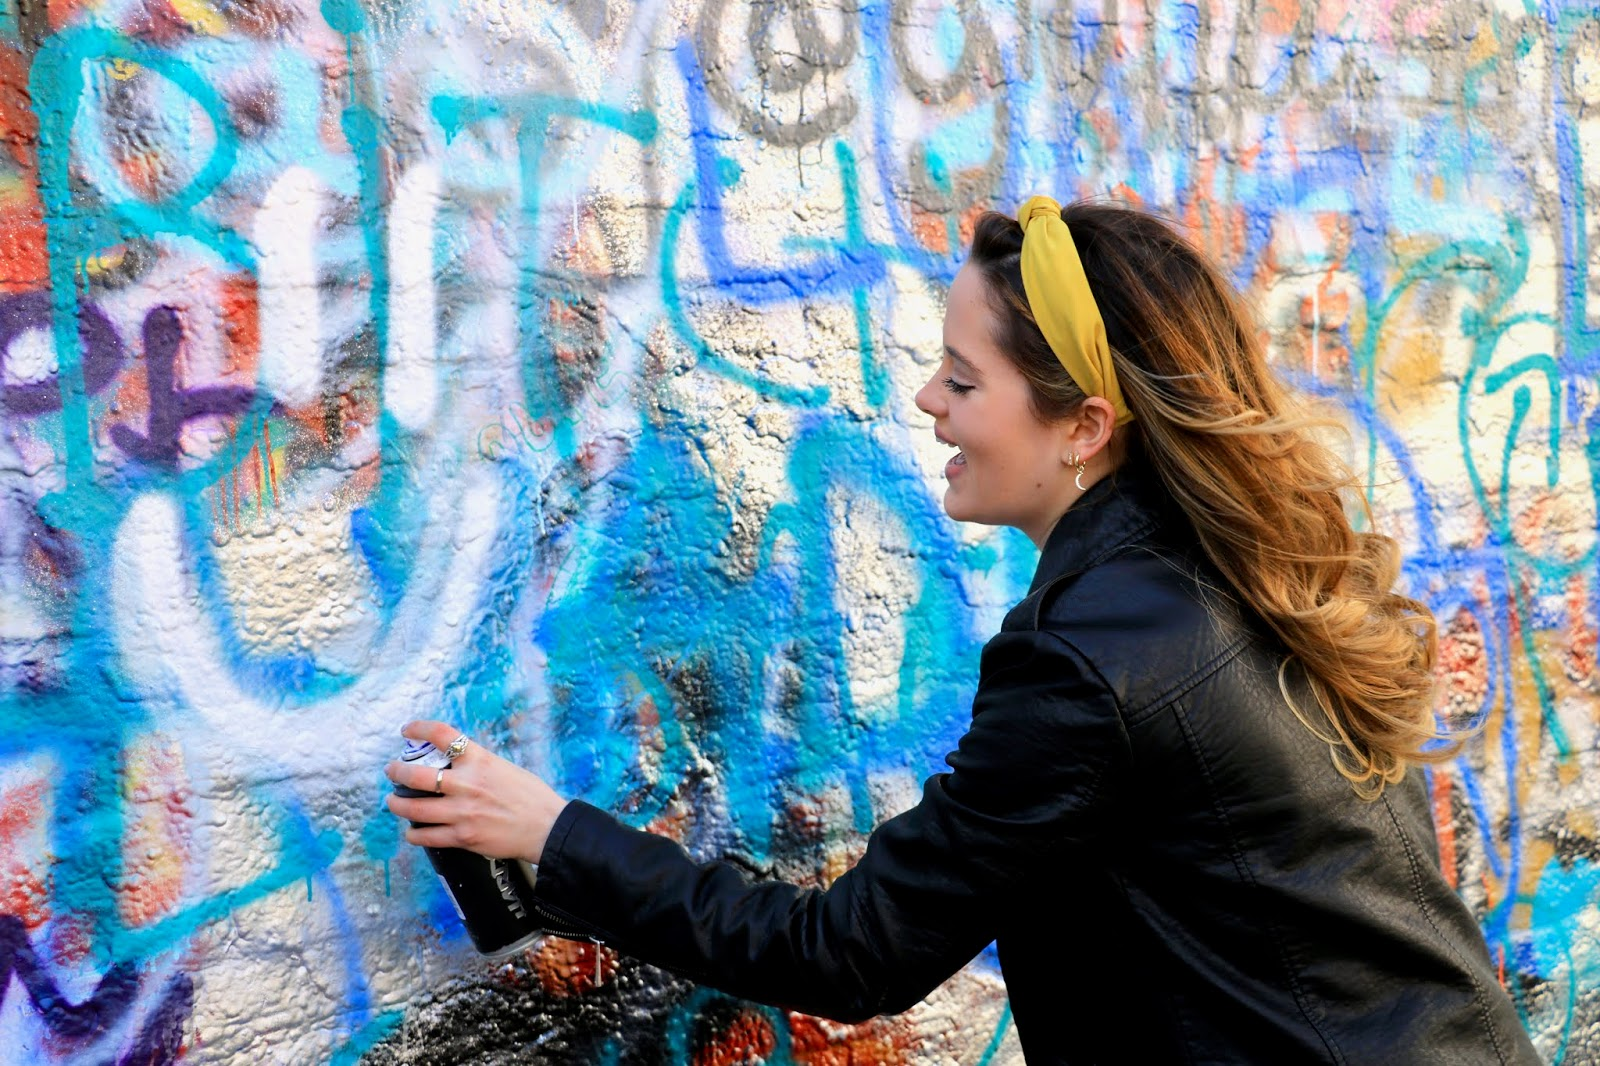 Kathleen Harper spray painting a wall on Graffiti Street in Gent, Belgium